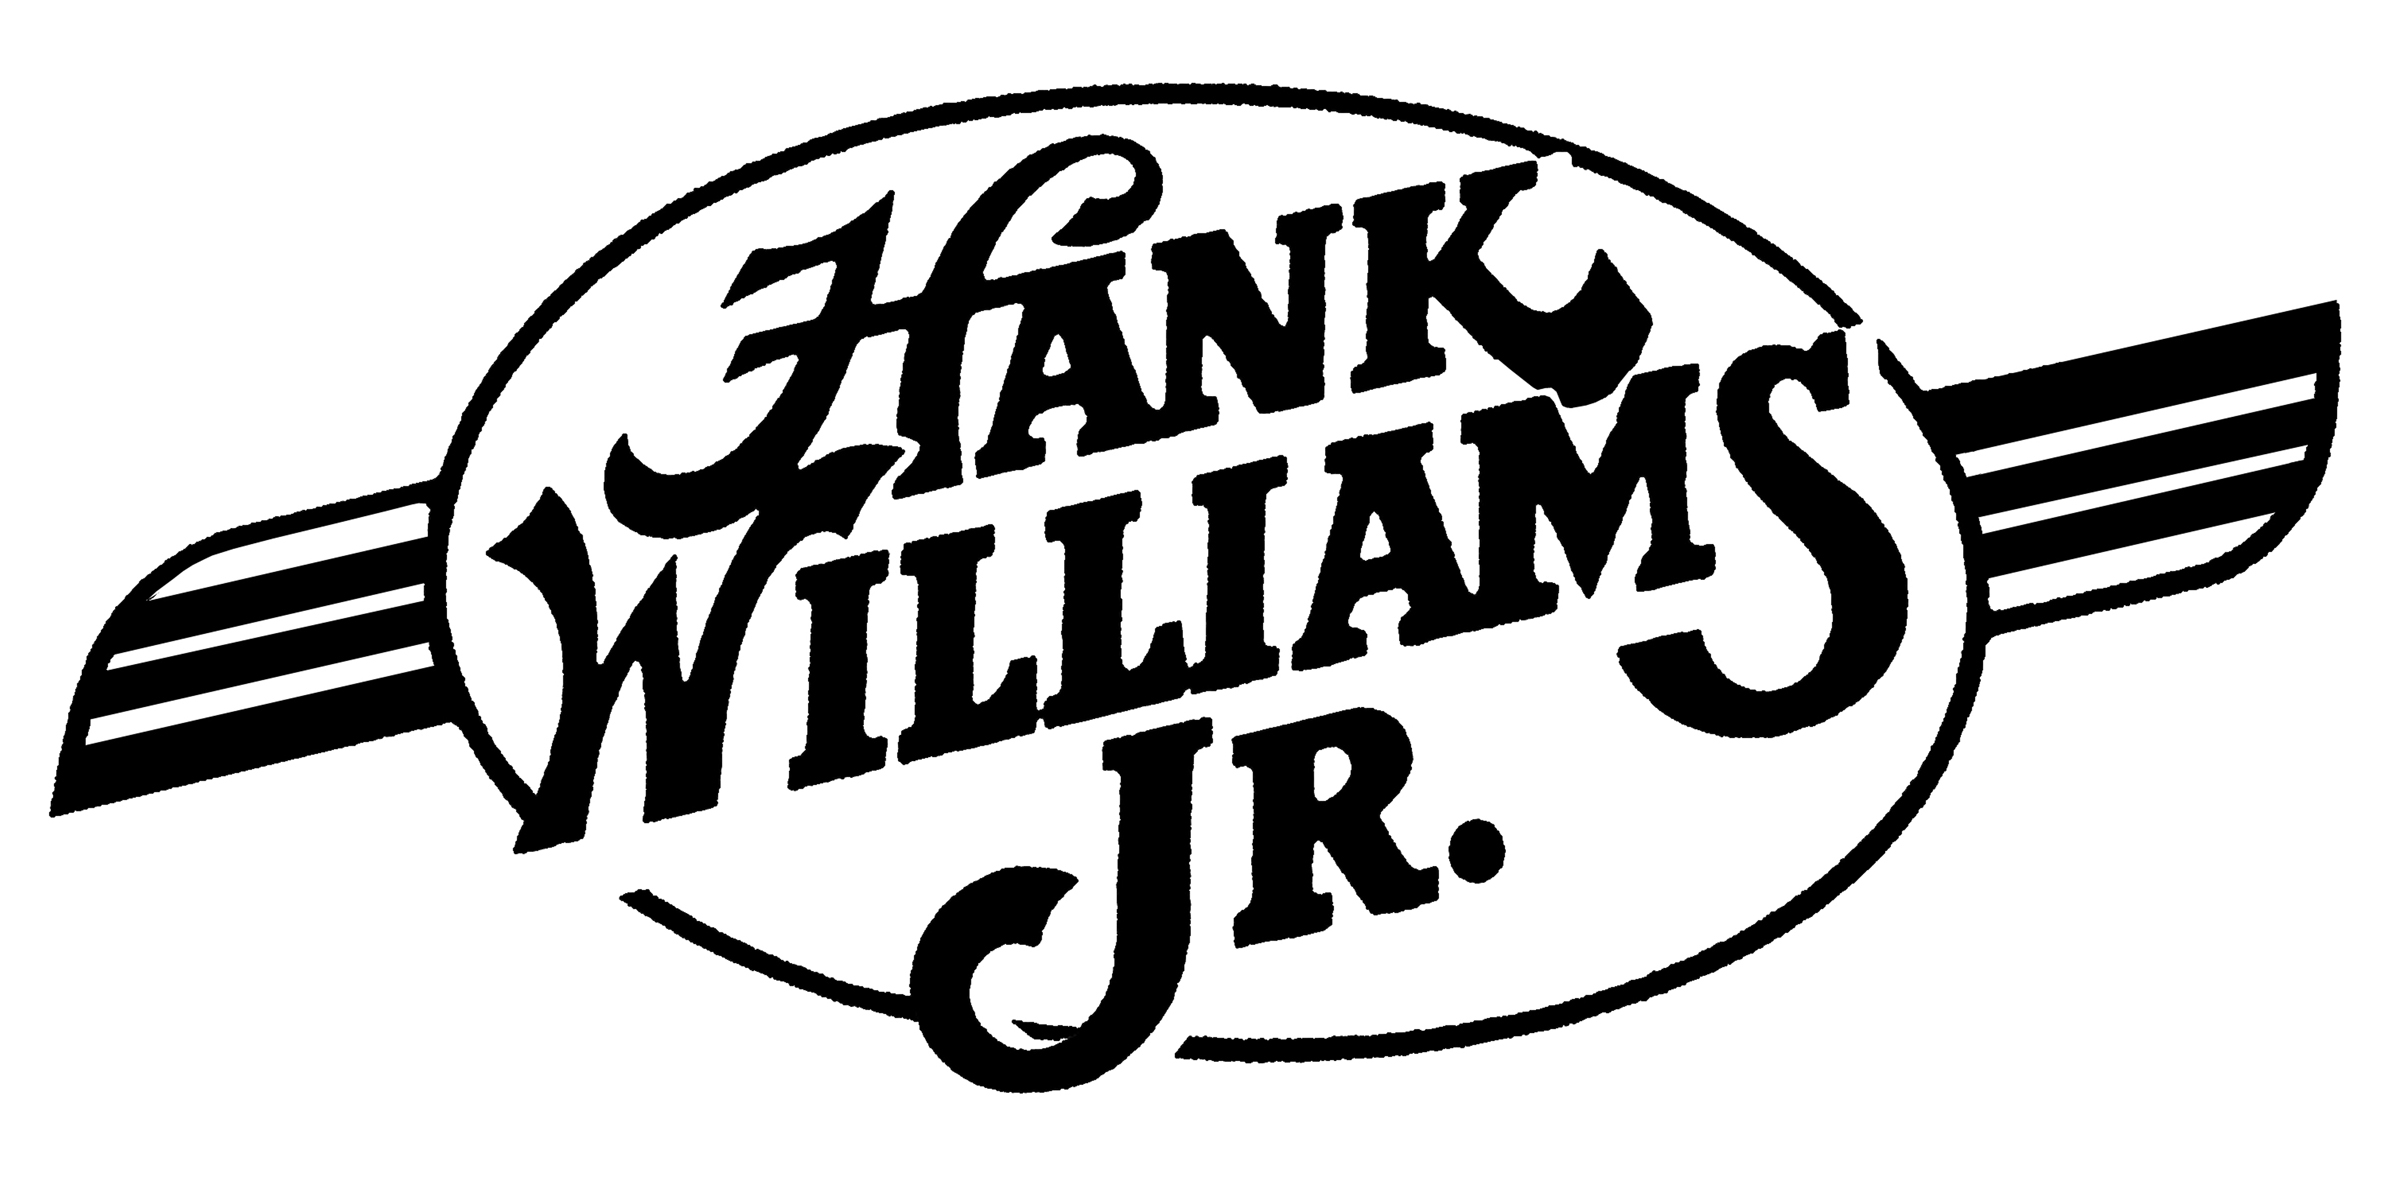 Hank Williams Jr To Headline Country Jam 2014 furthermore Clipart 28490 additionally Schematic Symbol For Led together with Electronic Symbol For Diode in addition American Baptist Churches Usa Graphics Logos. on electronic symbols clip art